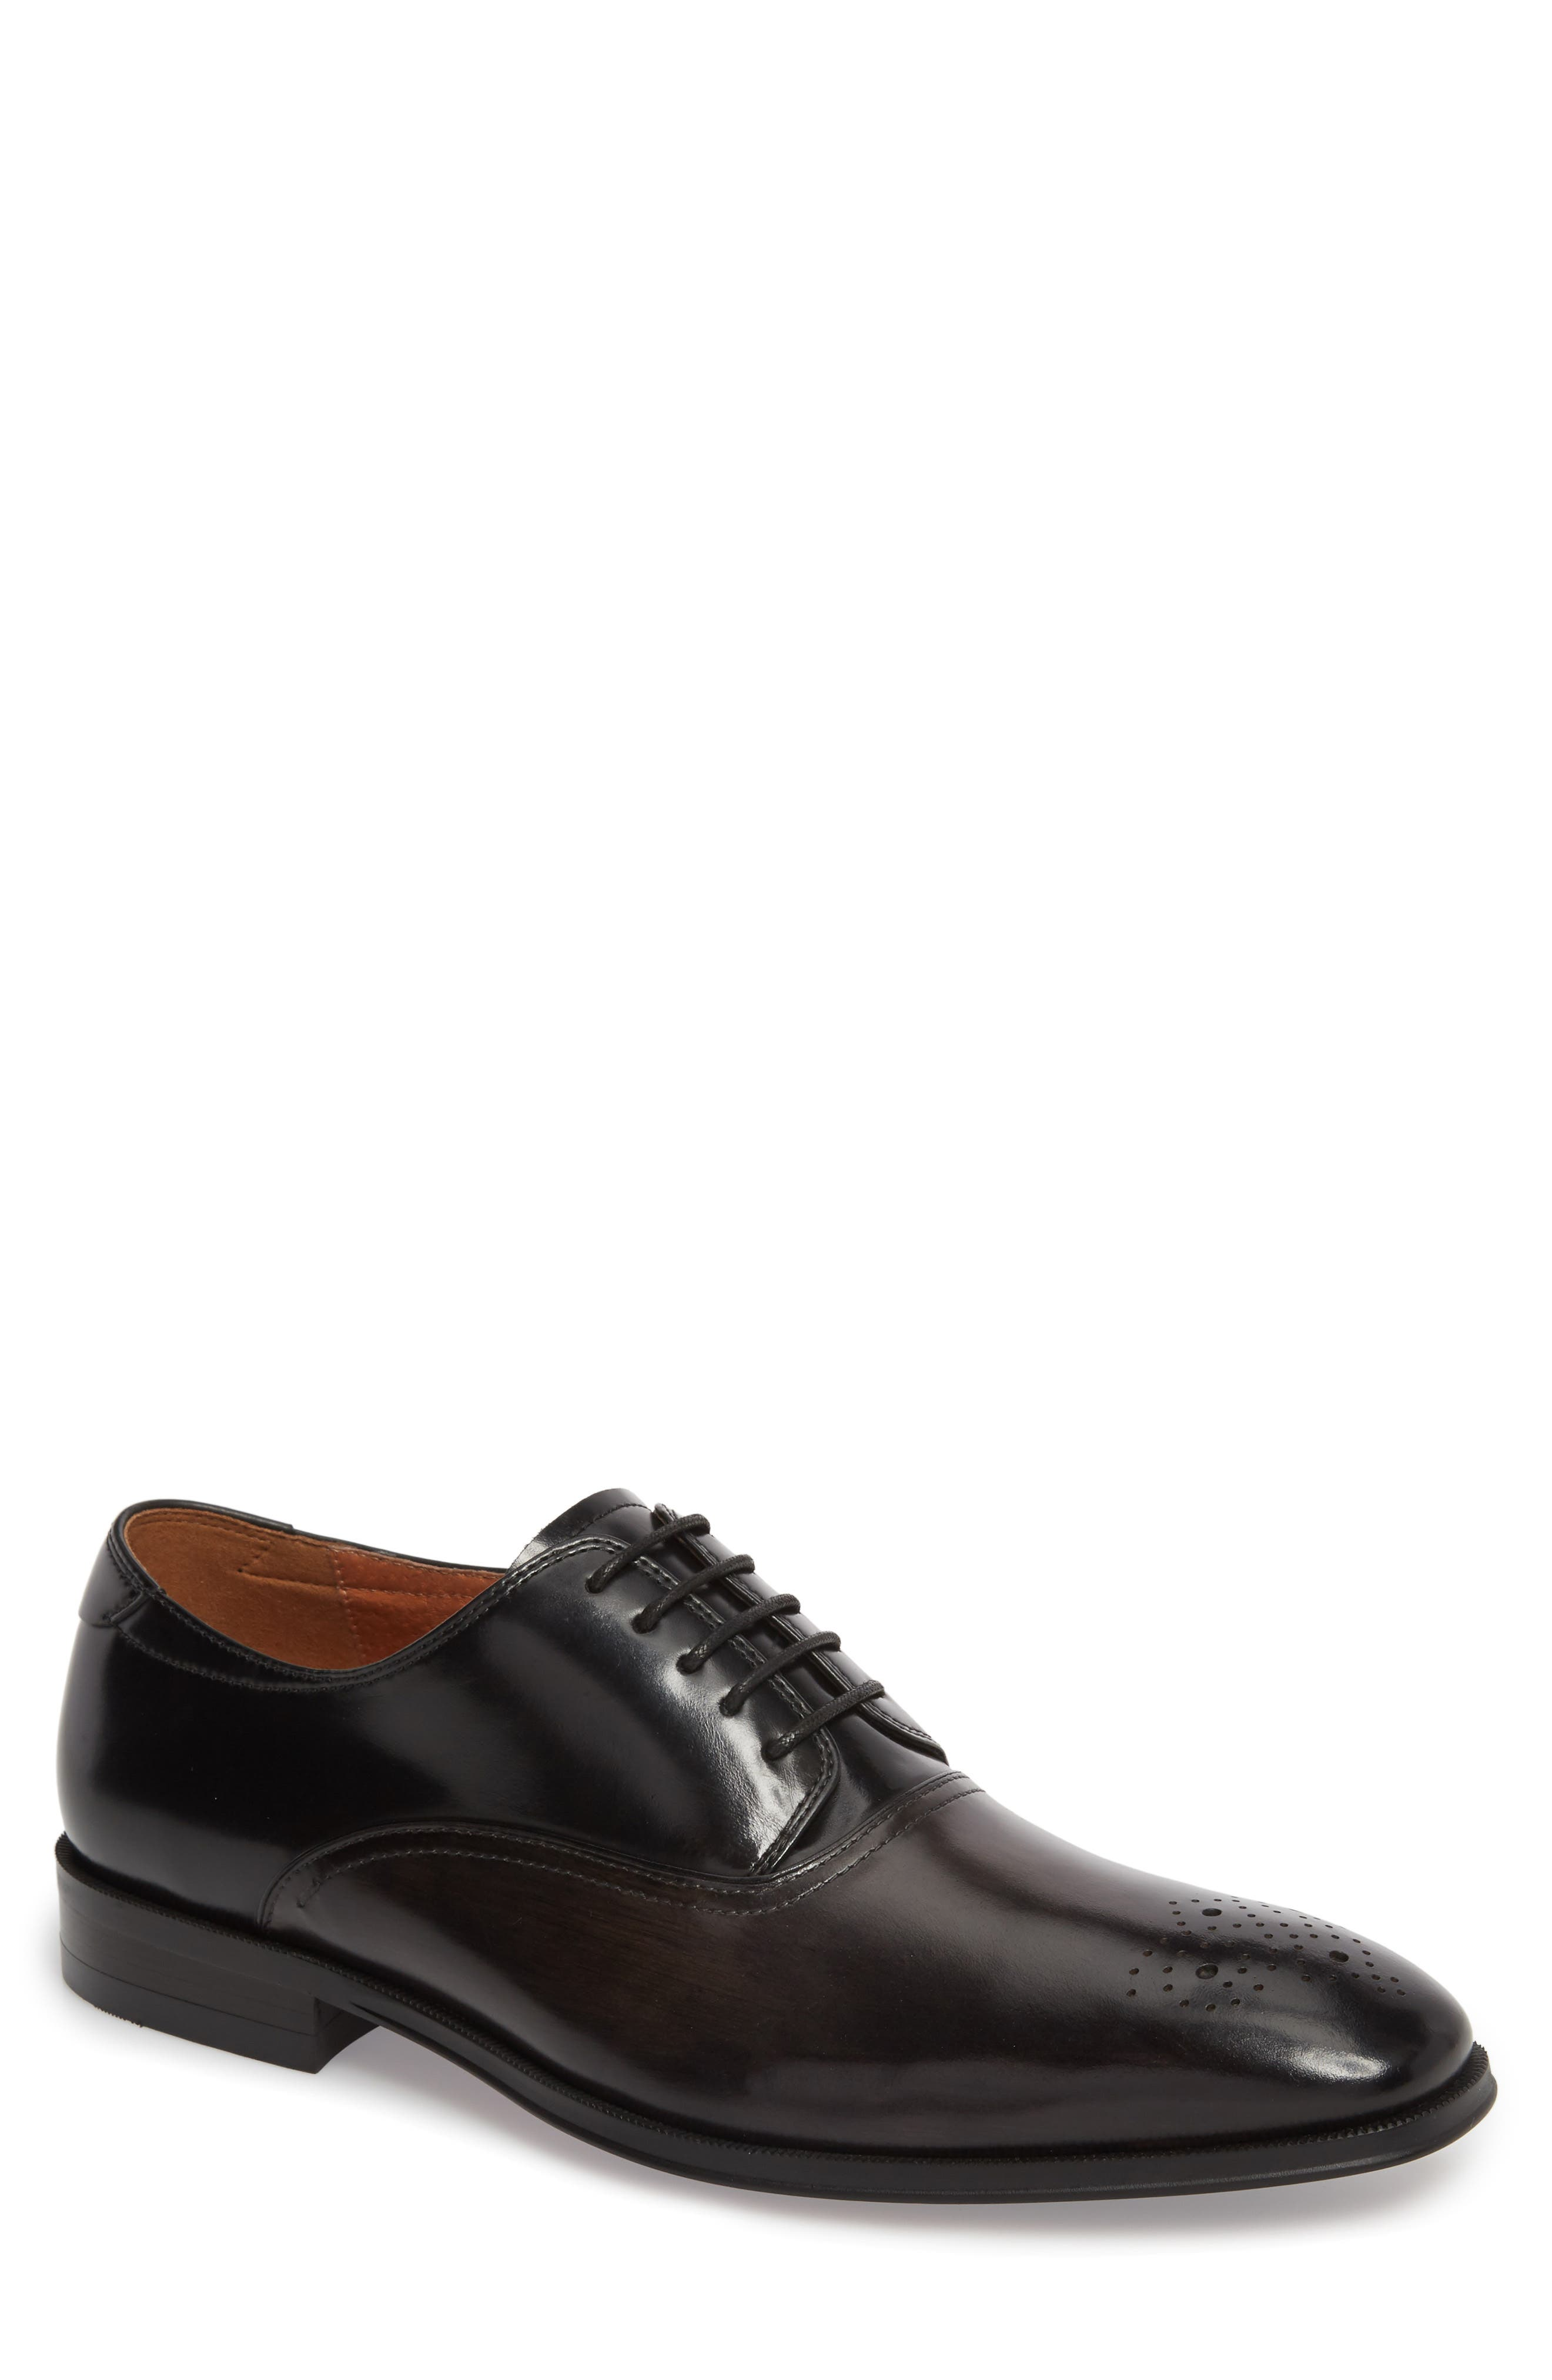 Belfast Brogued Derby,                         Main,                         color, GRAY/ BLACK LEATHER